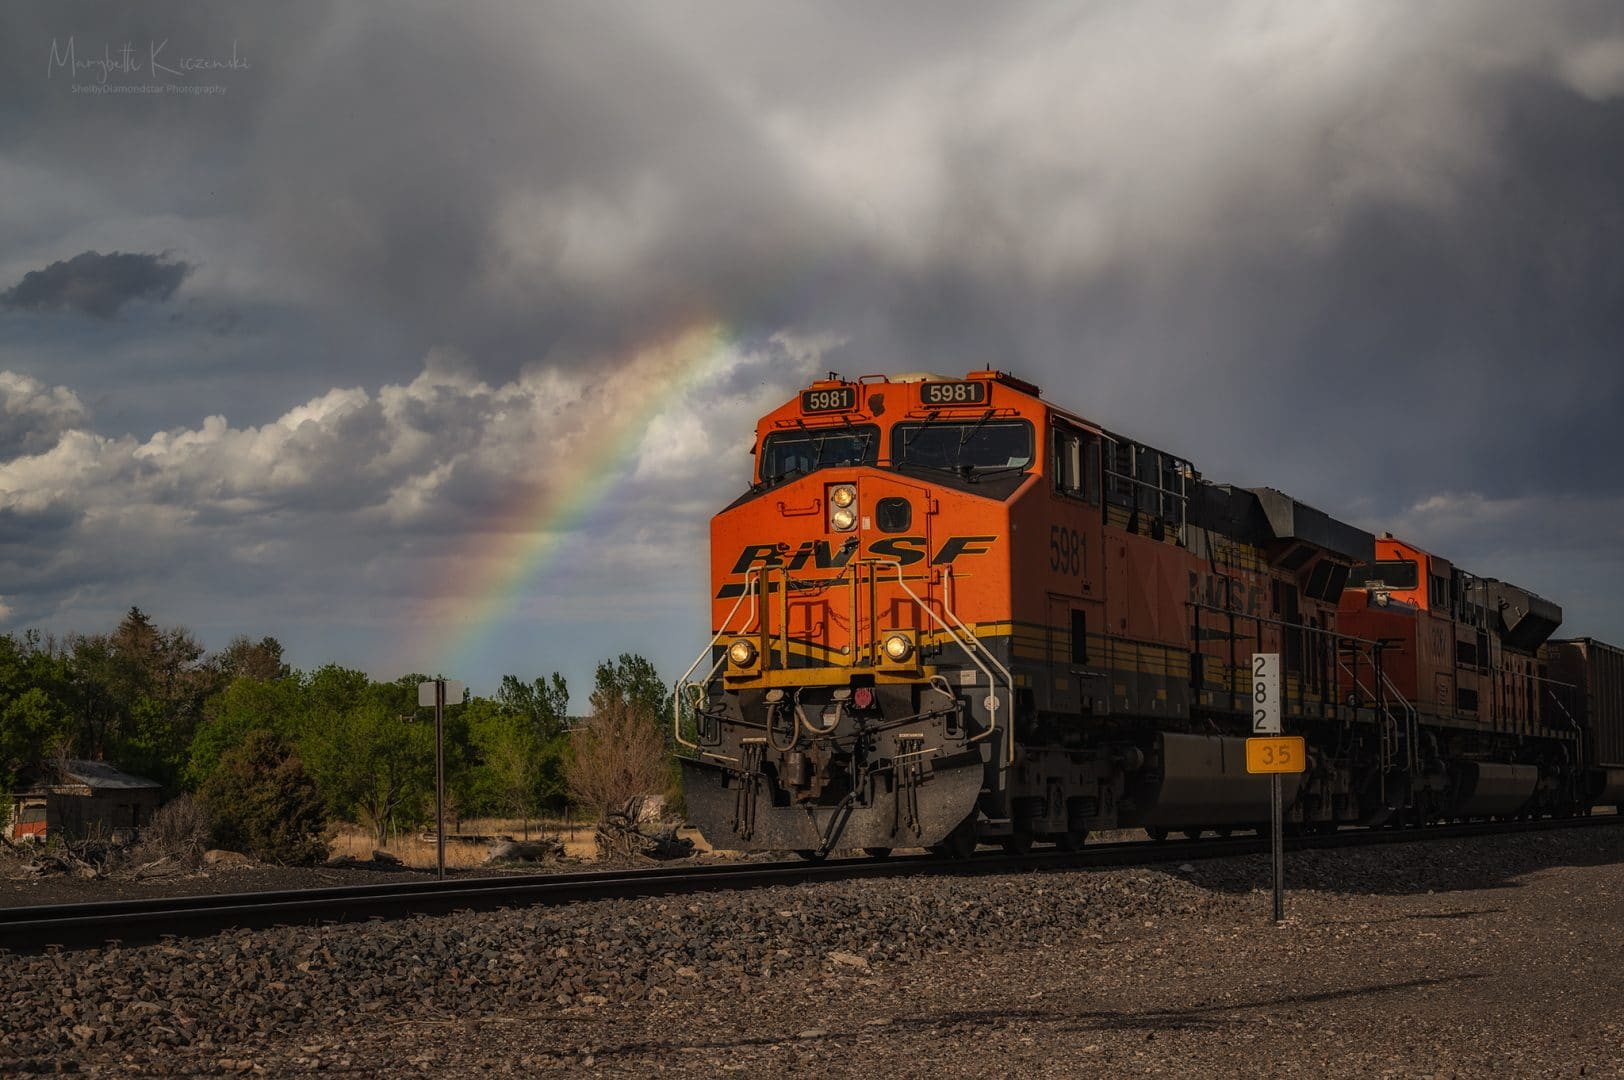 "Didn't know ""train with rainbow"" (trainbow?) was on my bucket list of shots, but here we are!   Nikon D850 - Nikkor 70-200mm. Copyright 2020 MaryBeth Kiczenski."